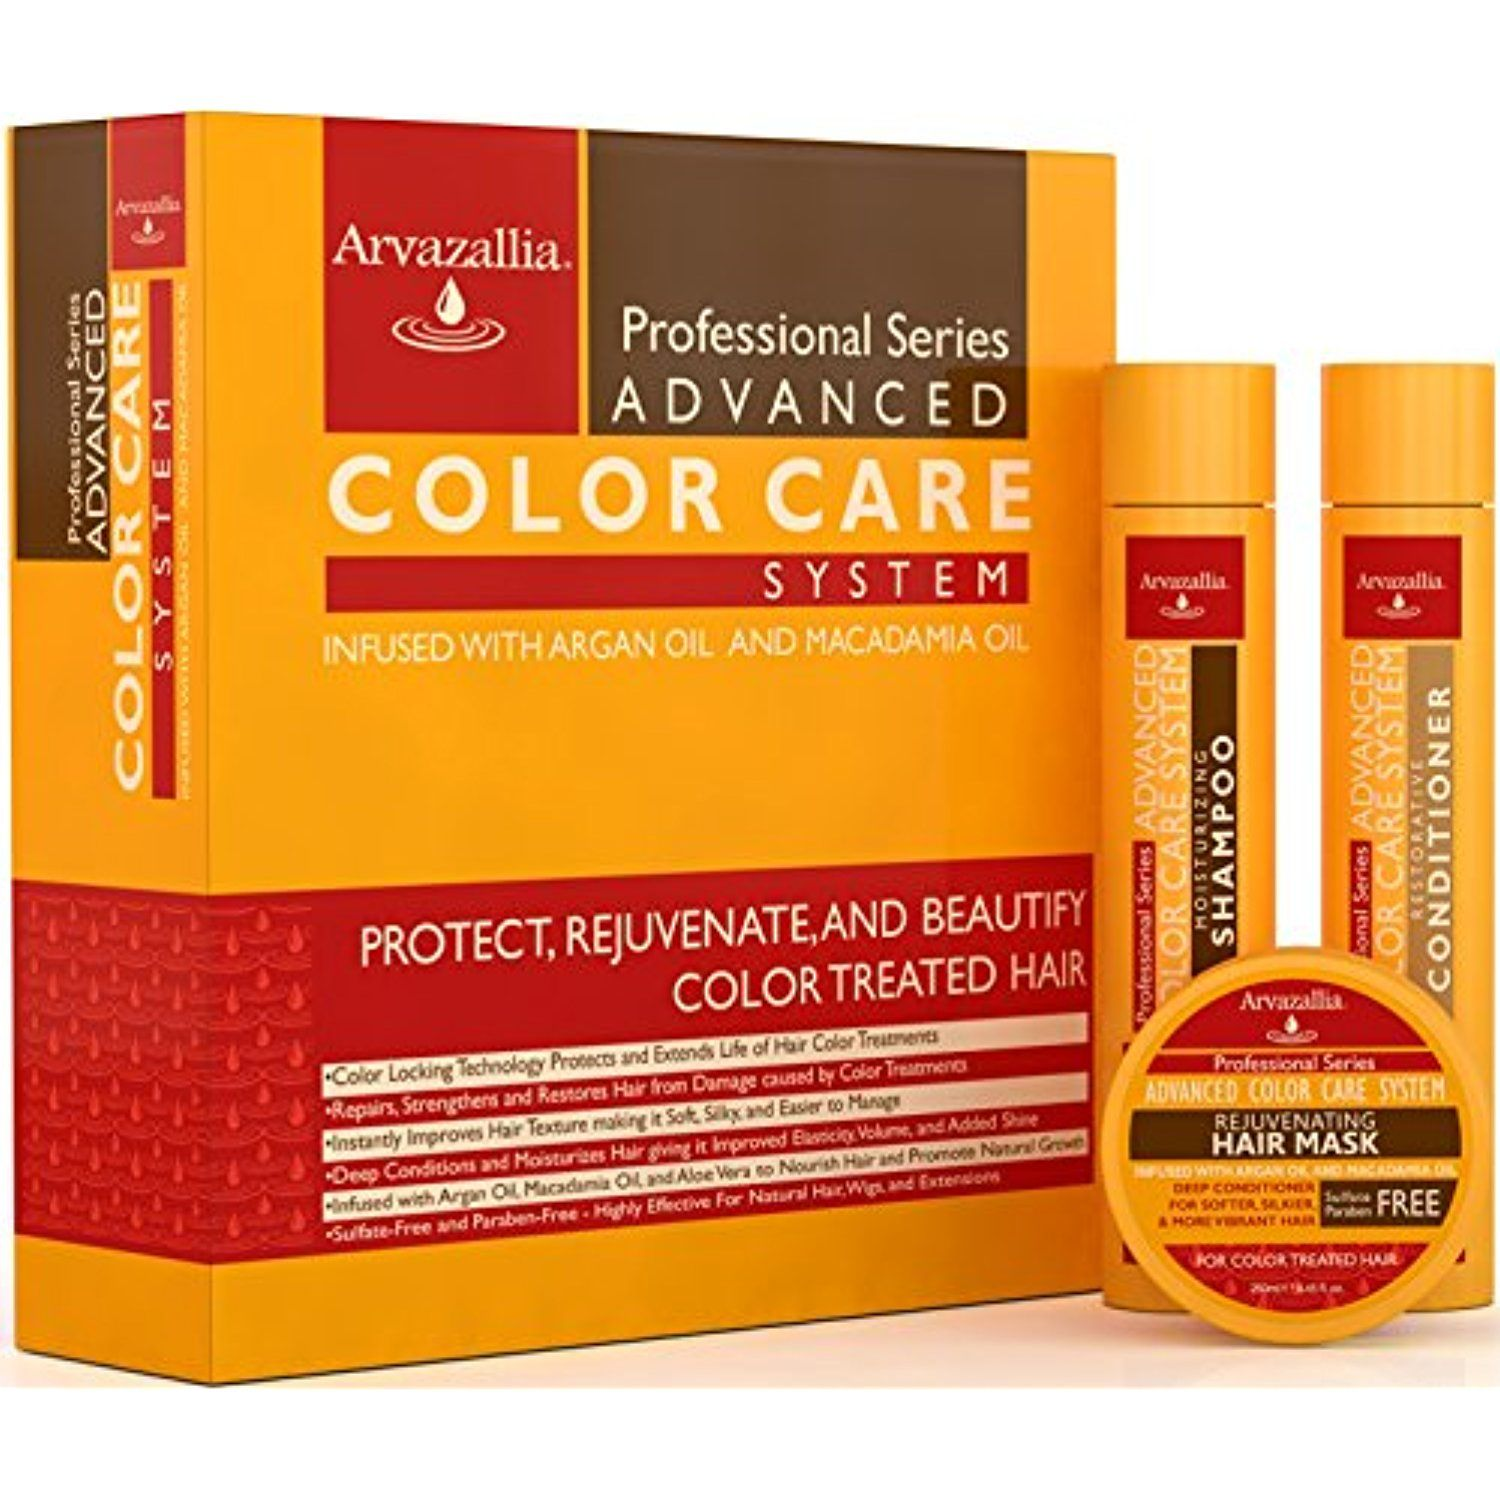 Lovely Conditioner for Color Treated Hair